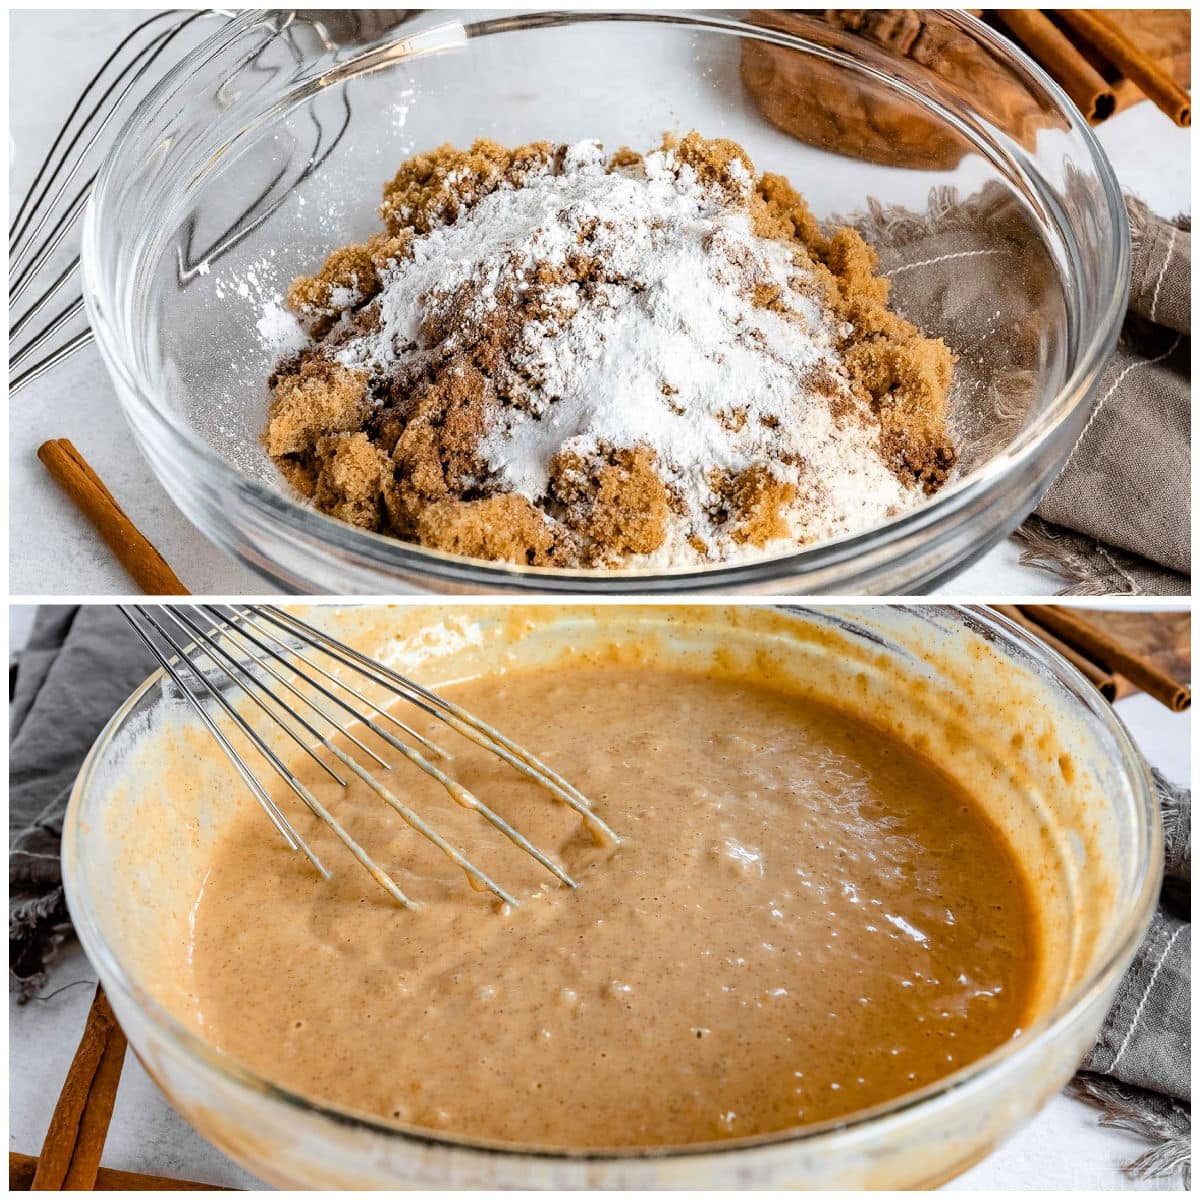 pumpkin pancakes being mixed together in glass bowl in 2 image collage